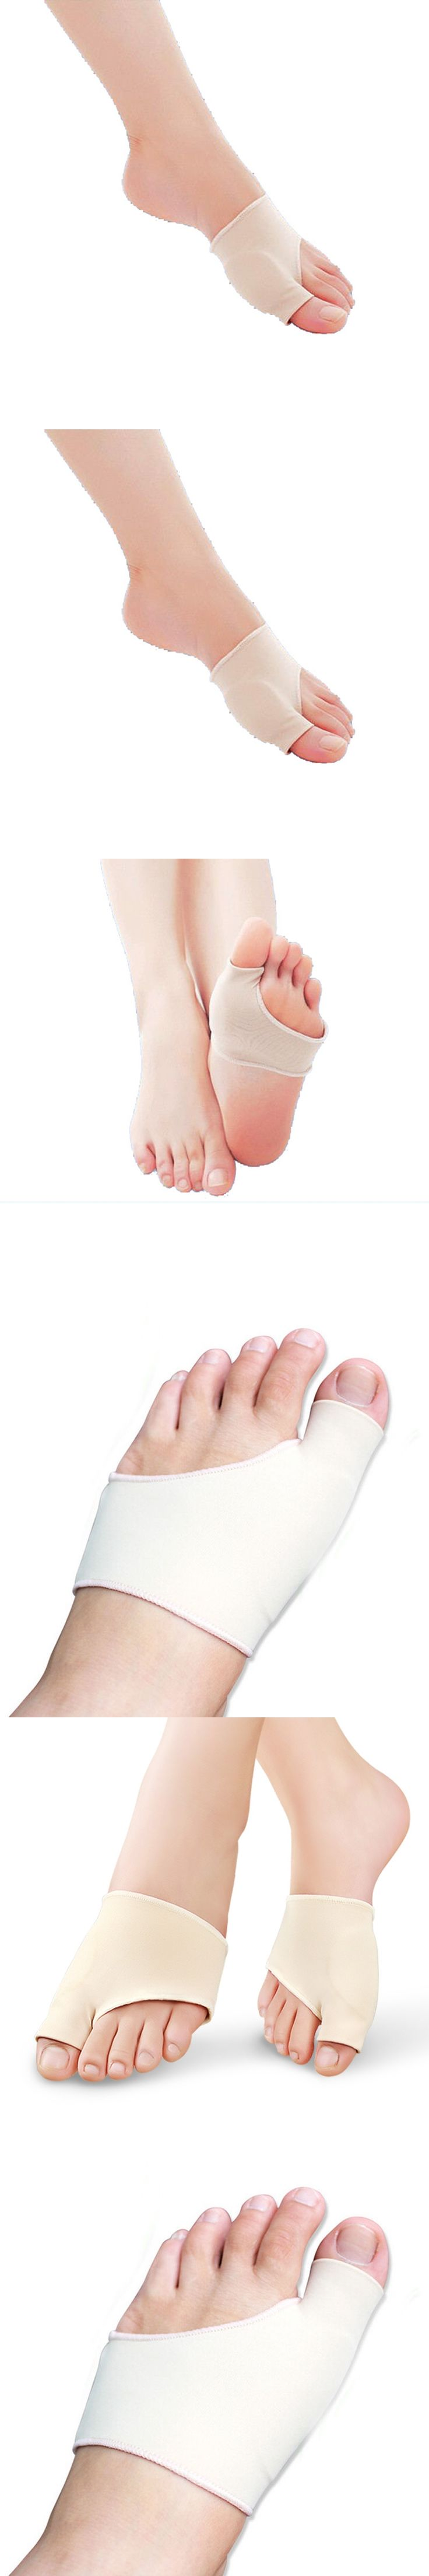 Bunion Gel Sleeve Hallux Valgus Device Foot Pain Relieve Foot Care For Heels Insoles Orthotics Overlapping Big Toes Correction